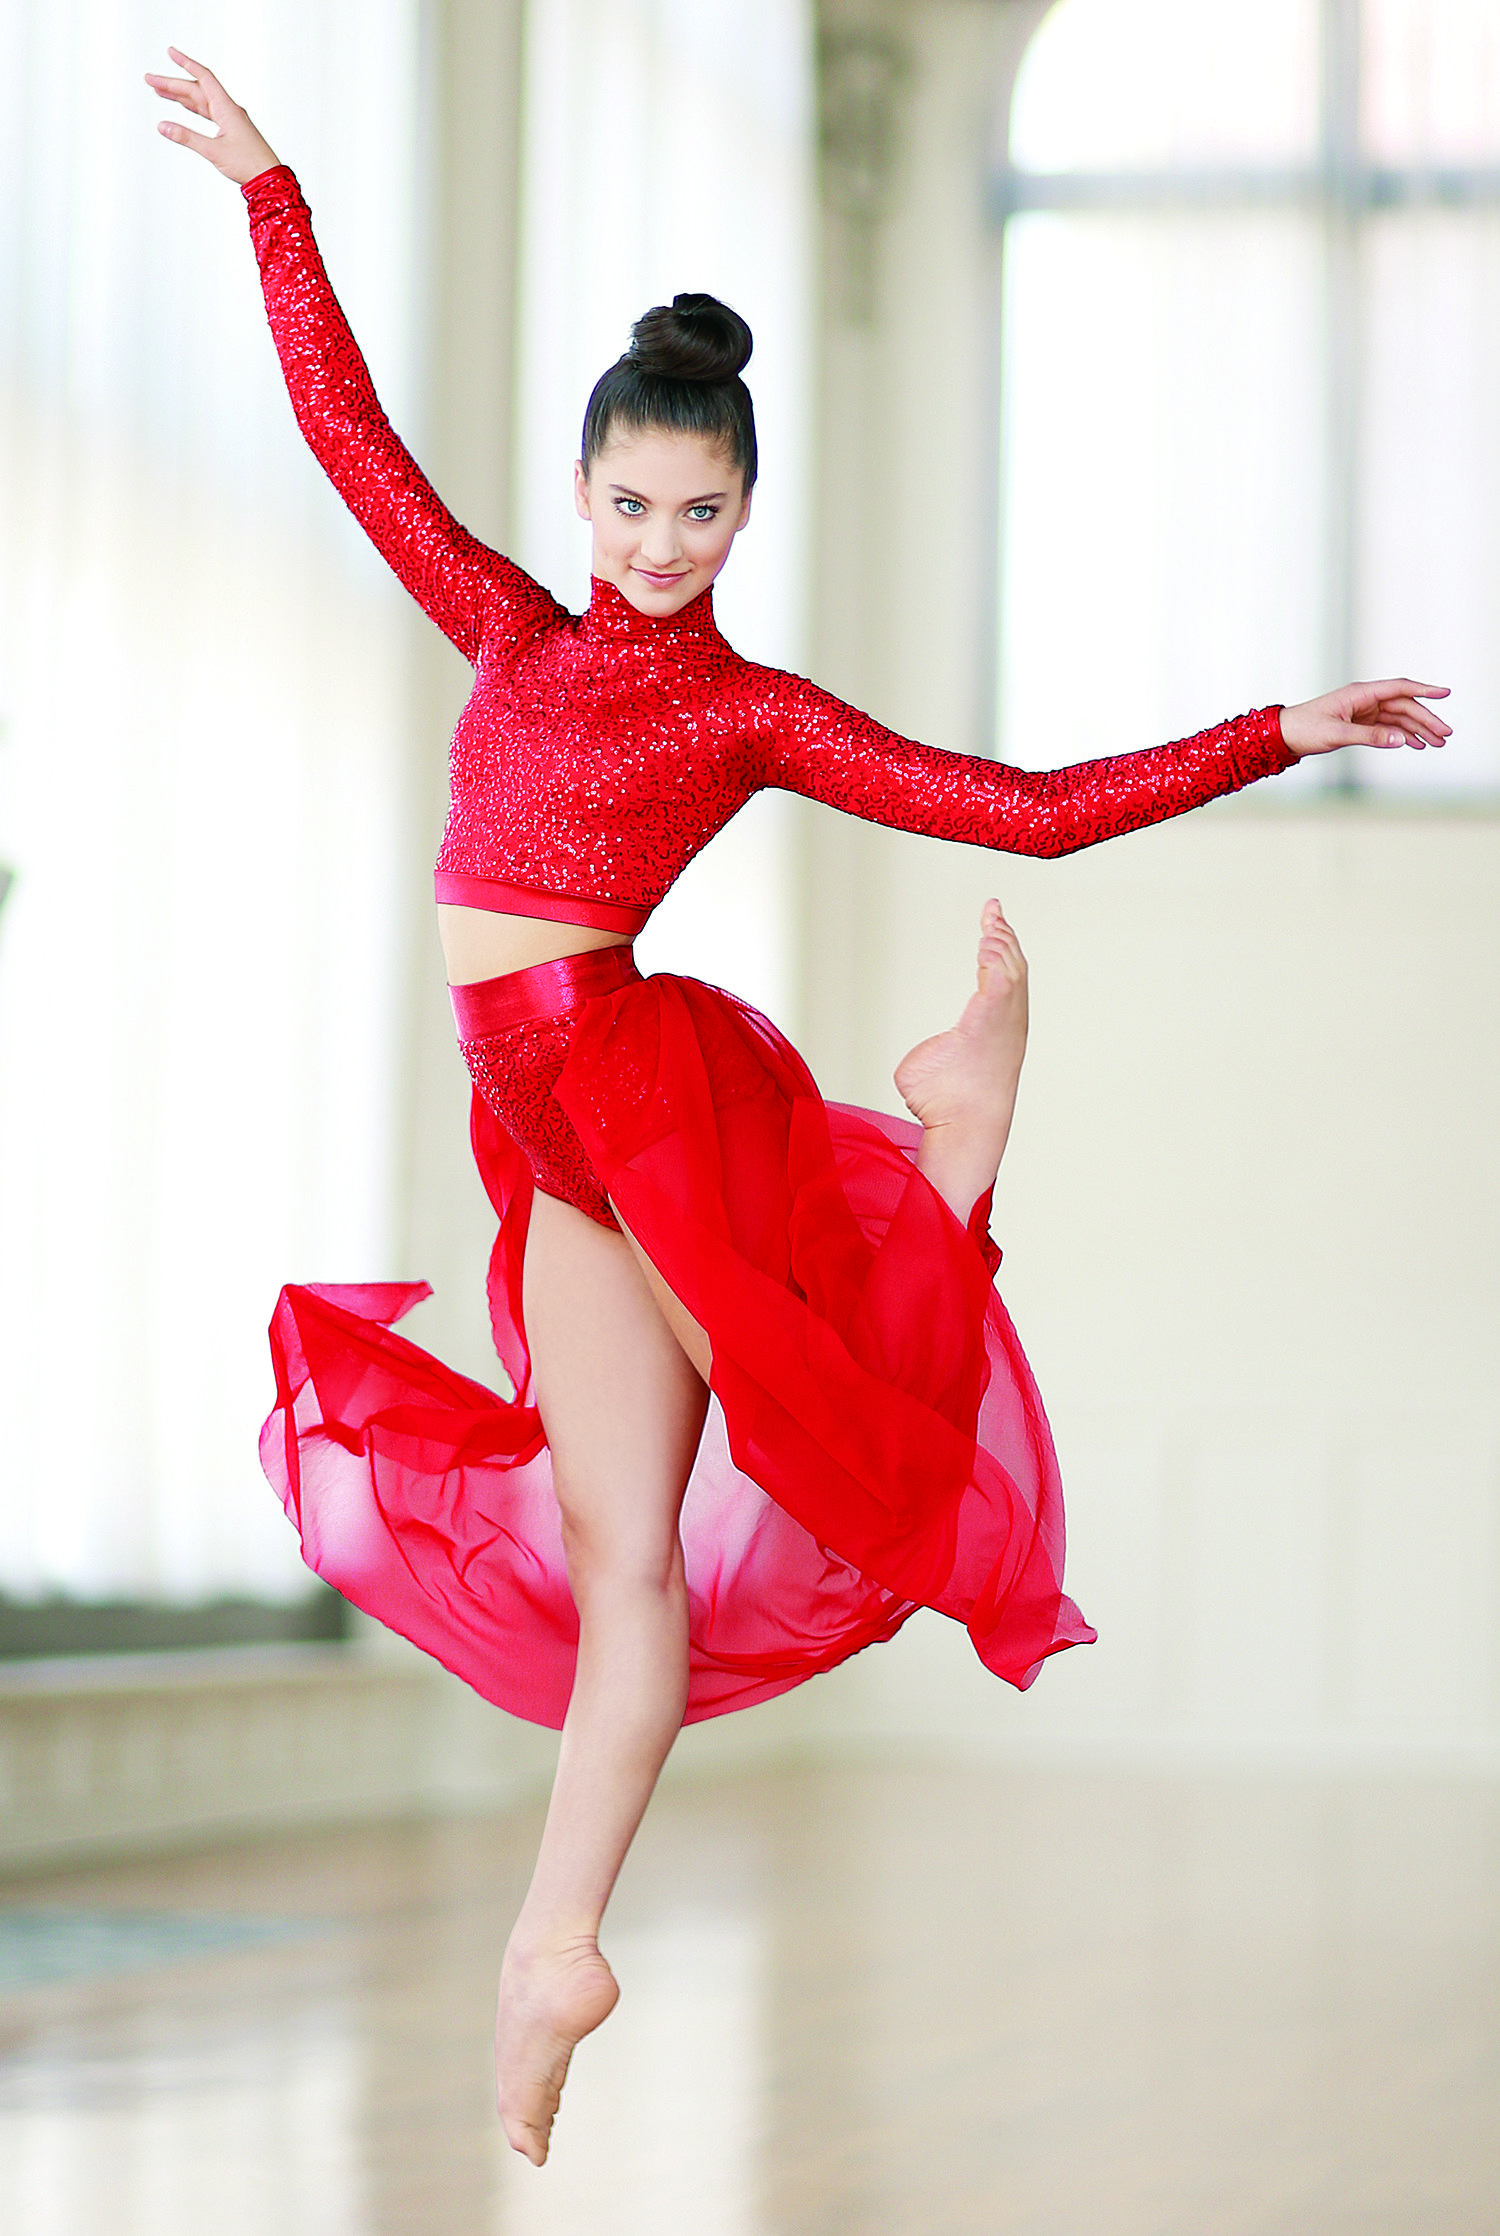 e32656979 Put some pizzazz in your routine with the Sequin Performance Collection  from Dancewear Solutions.